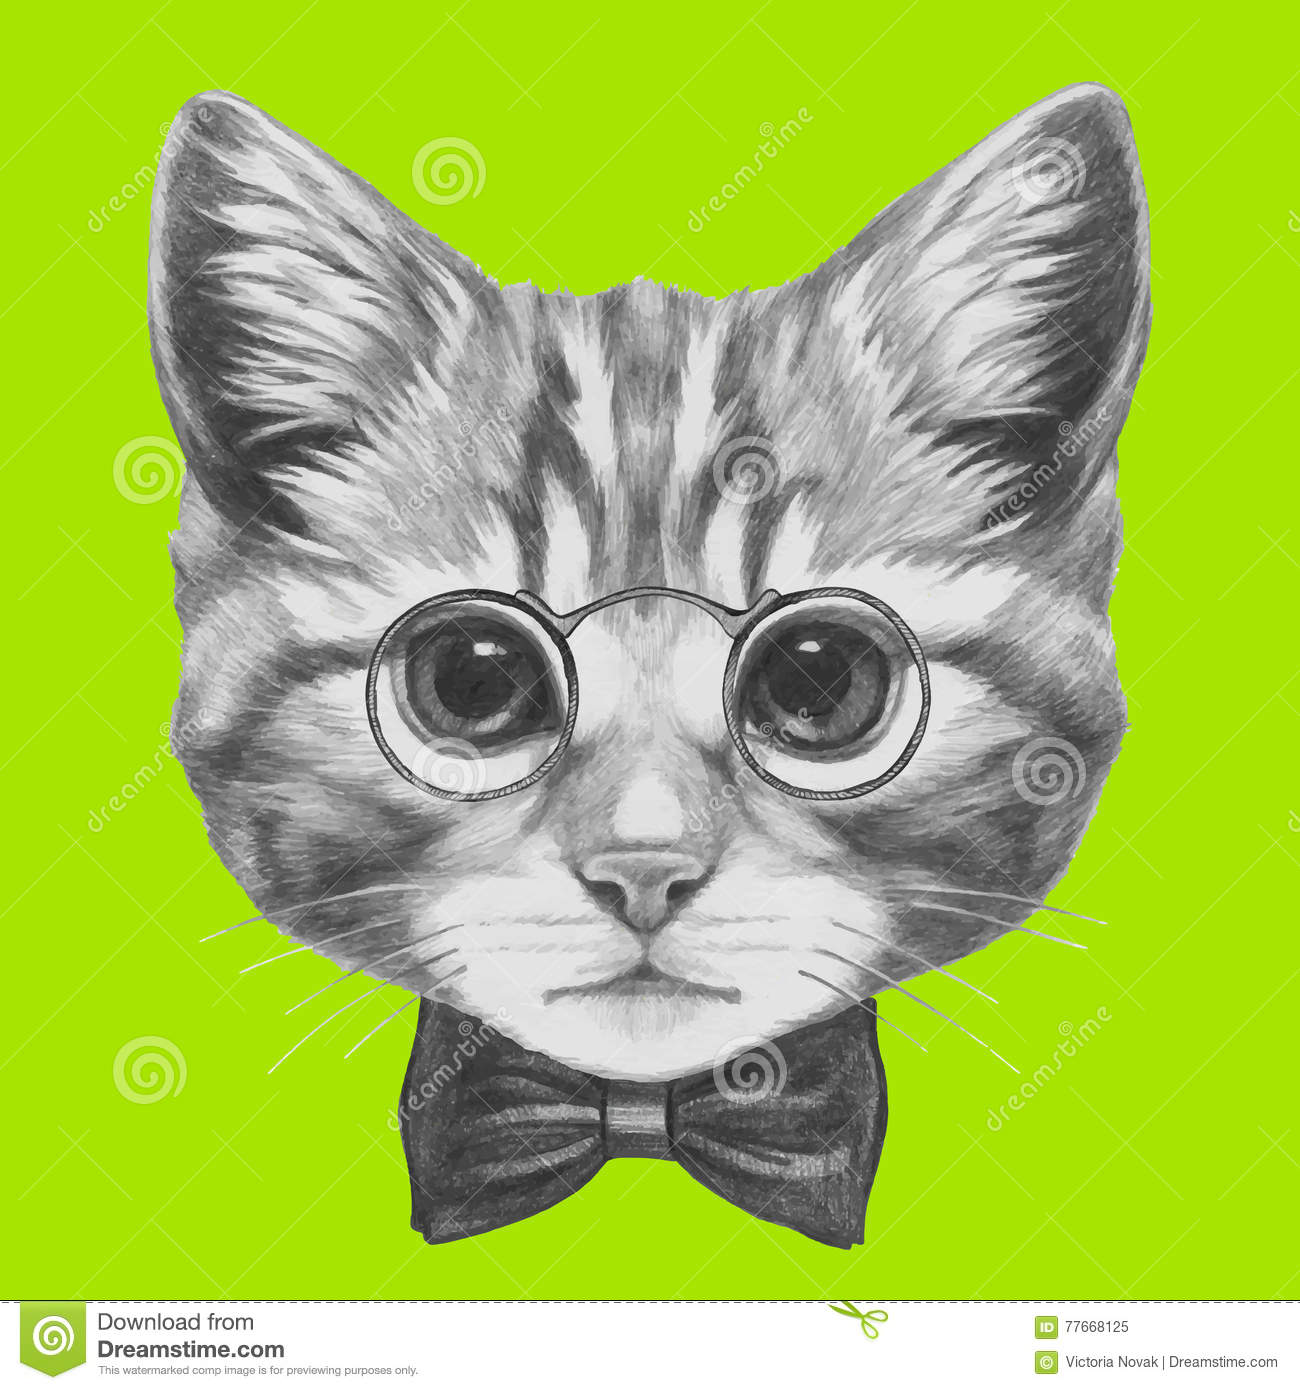 3ffd5cb805e0 Royalty-Free Vector. Hand drawn portrait of Cat with glasses and bow tie.